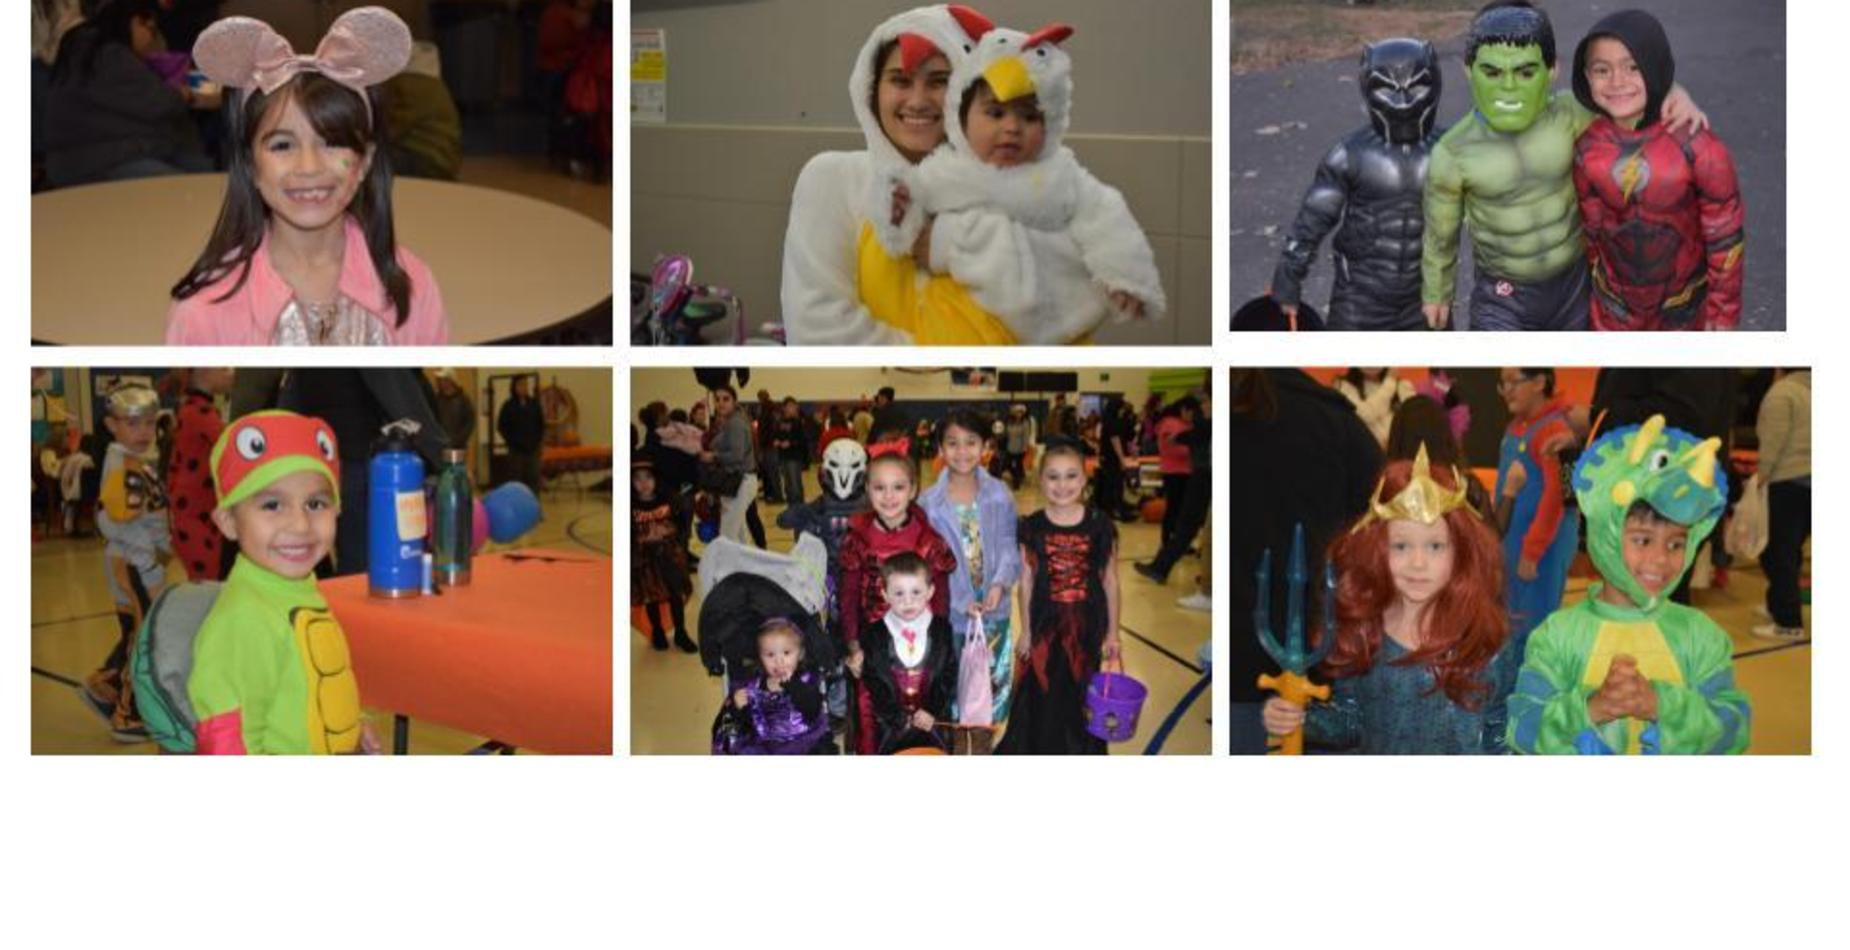 Kids and families dressed up for the halloween carnival.